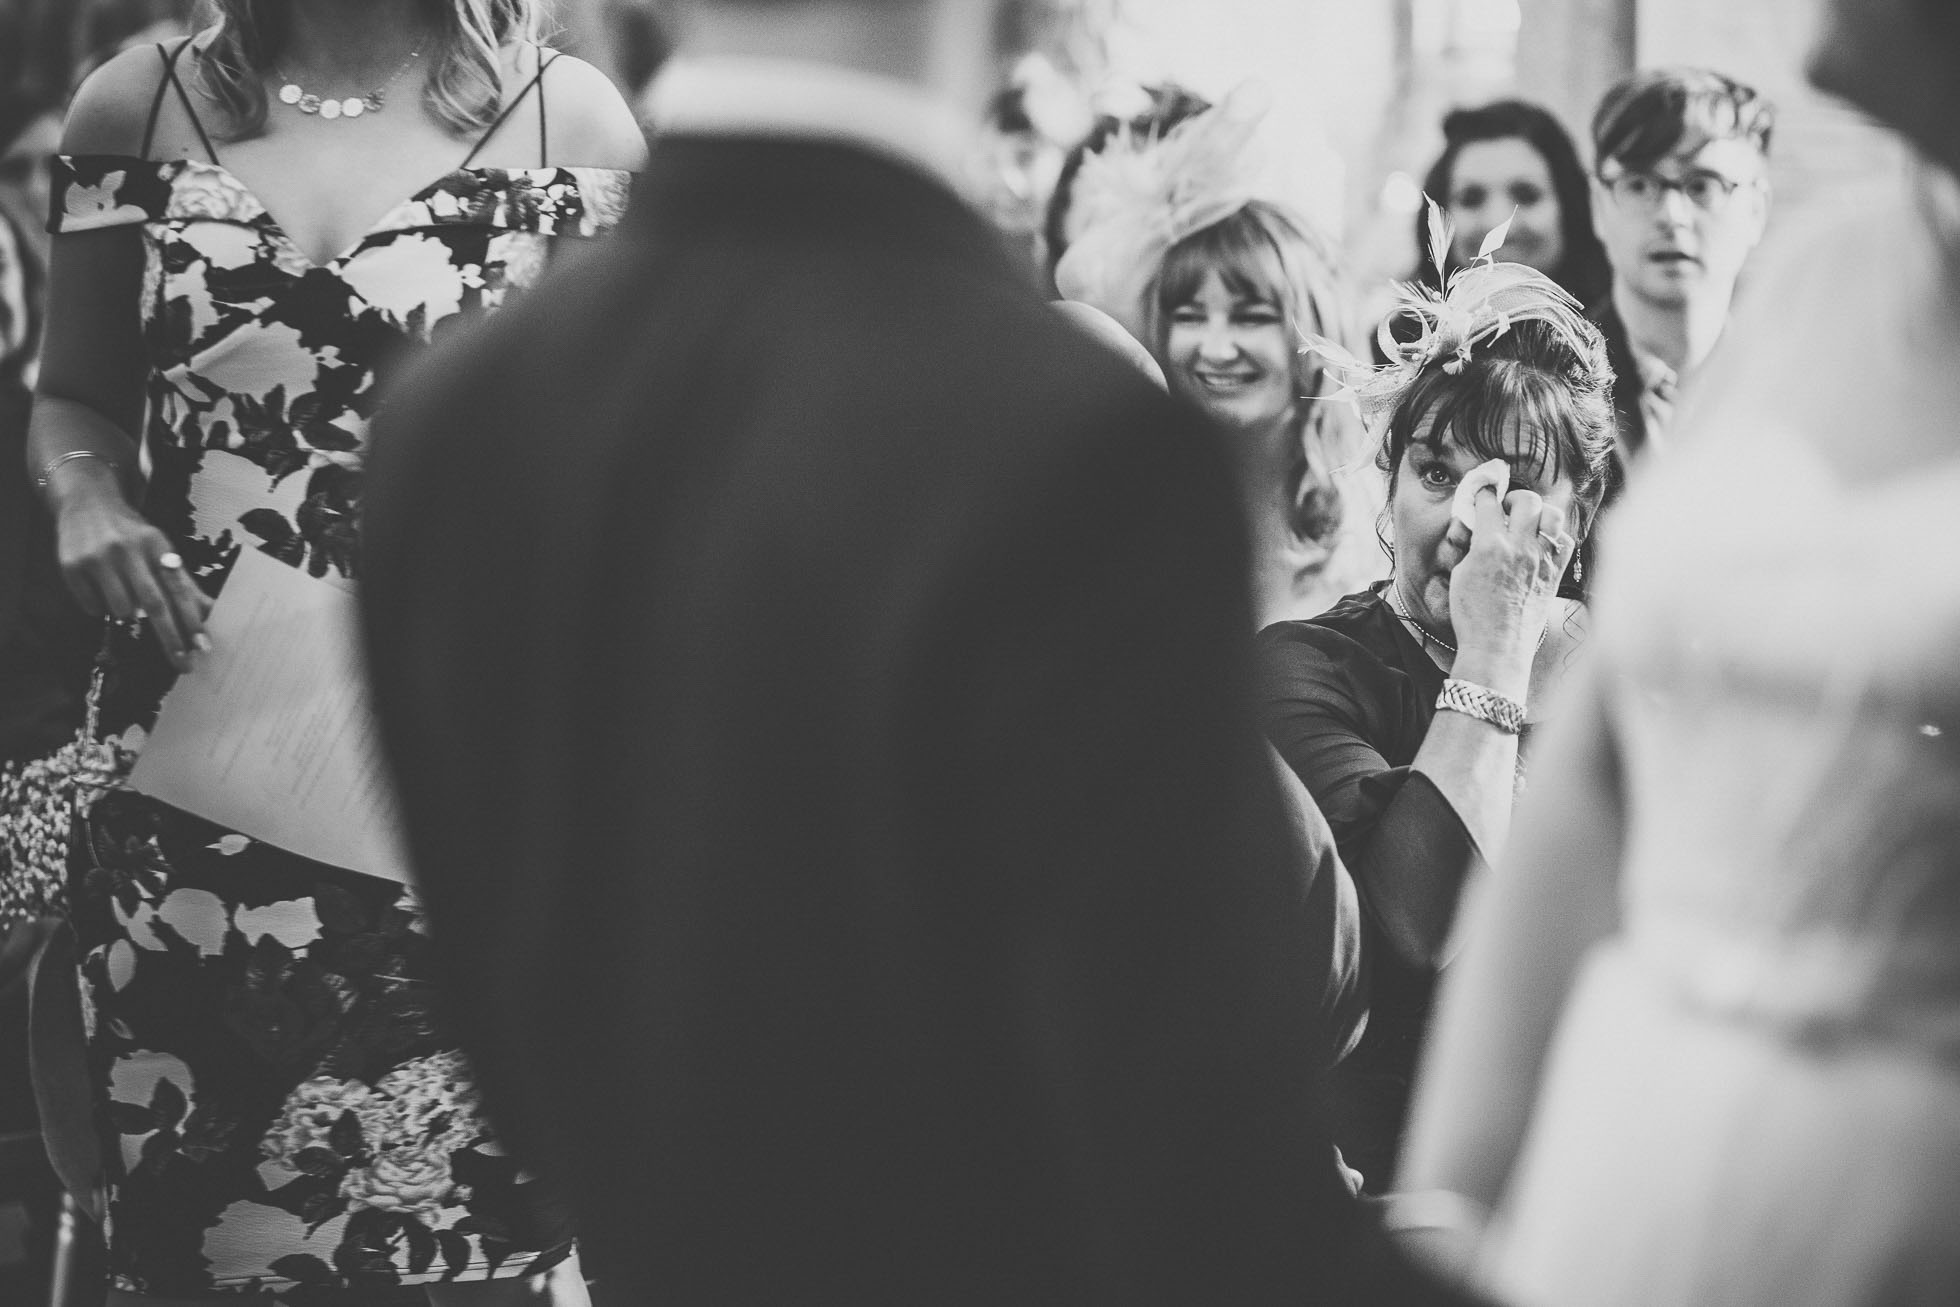 danby_castle_wedding_photographer-44.jpg